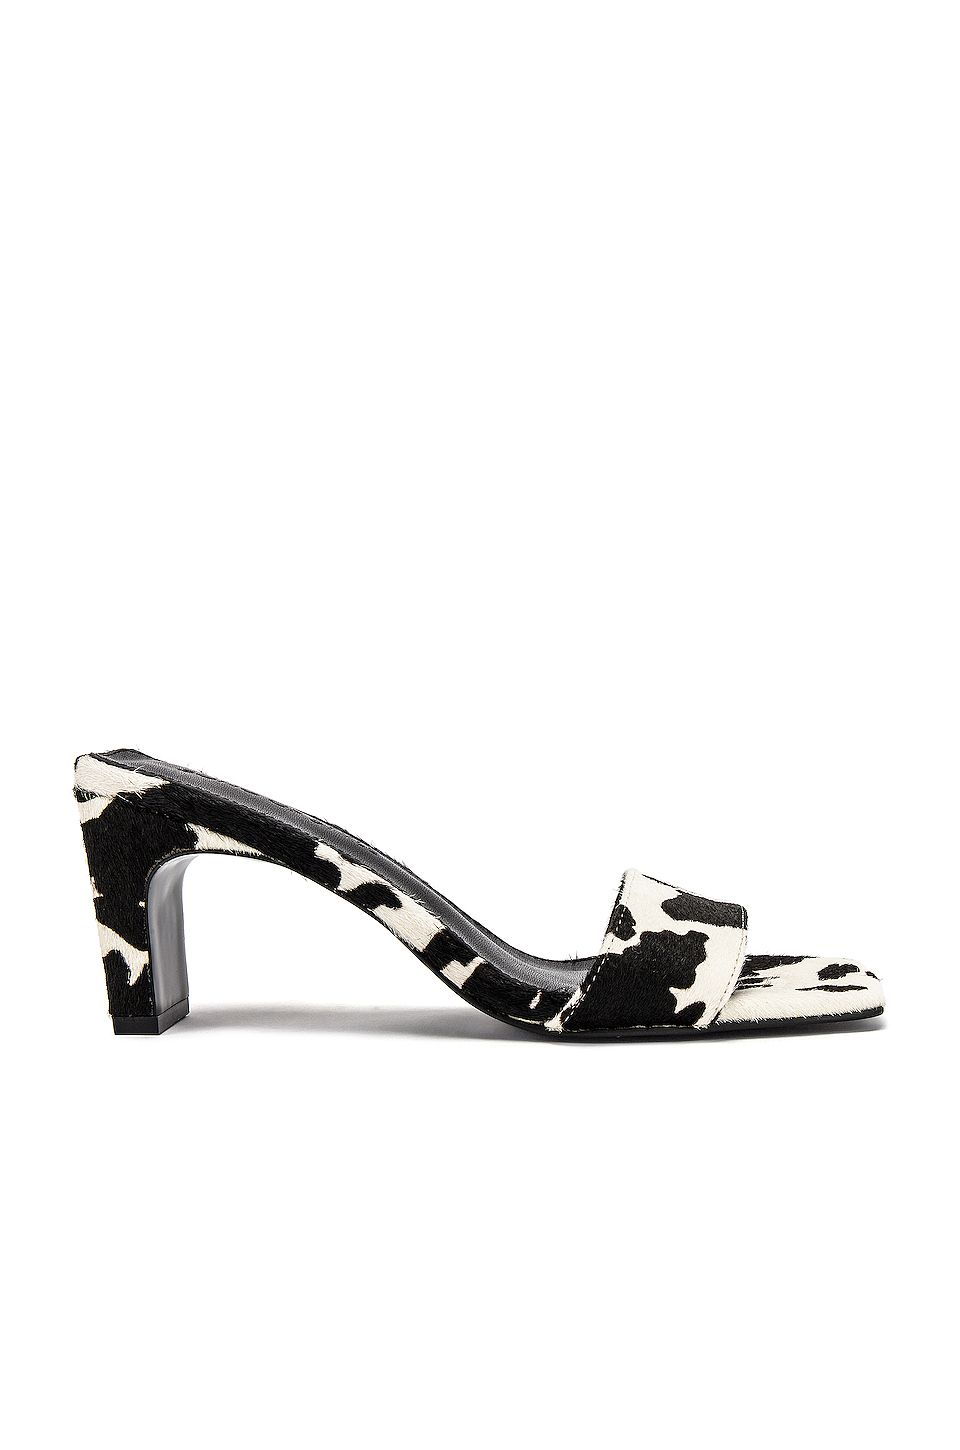 Arrow Heel in Black and White